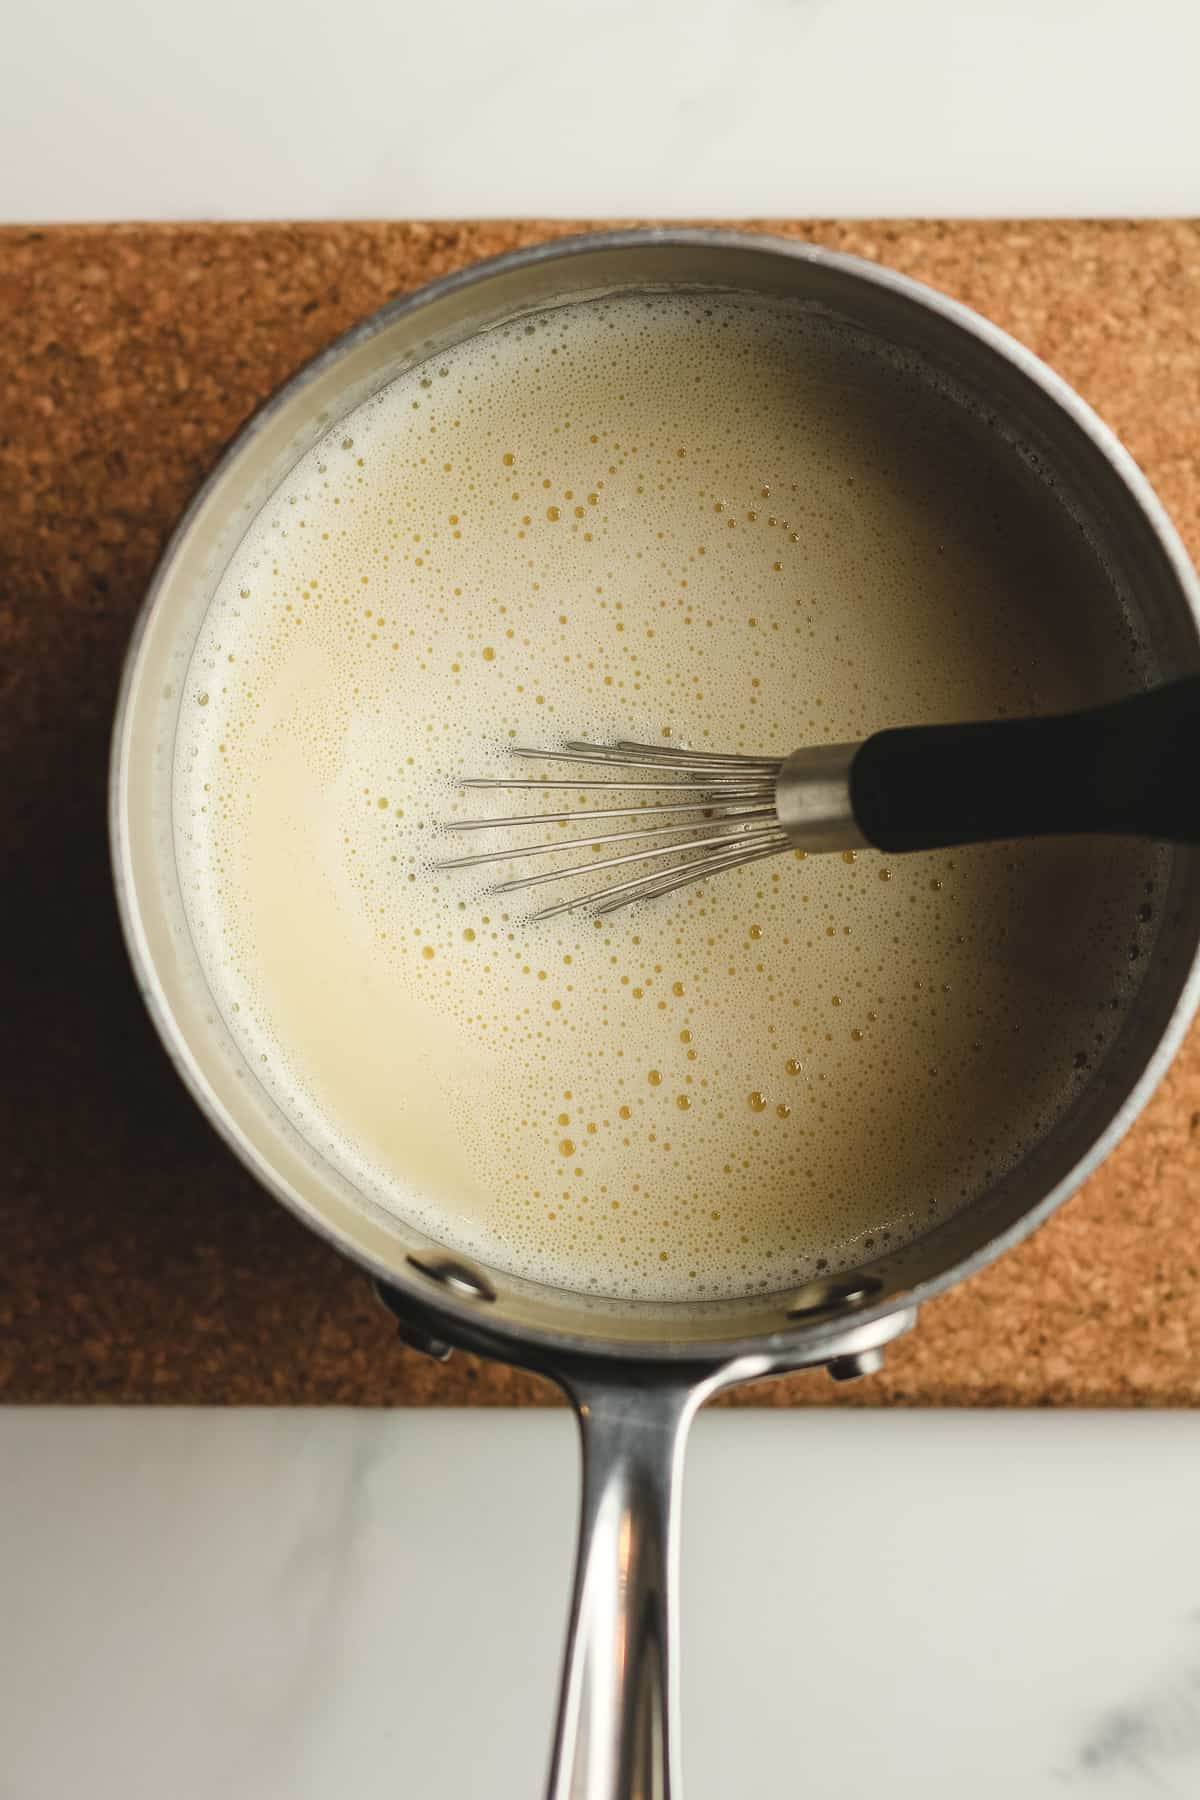 Overhead shot of a saucepan of the tempered egg mix.